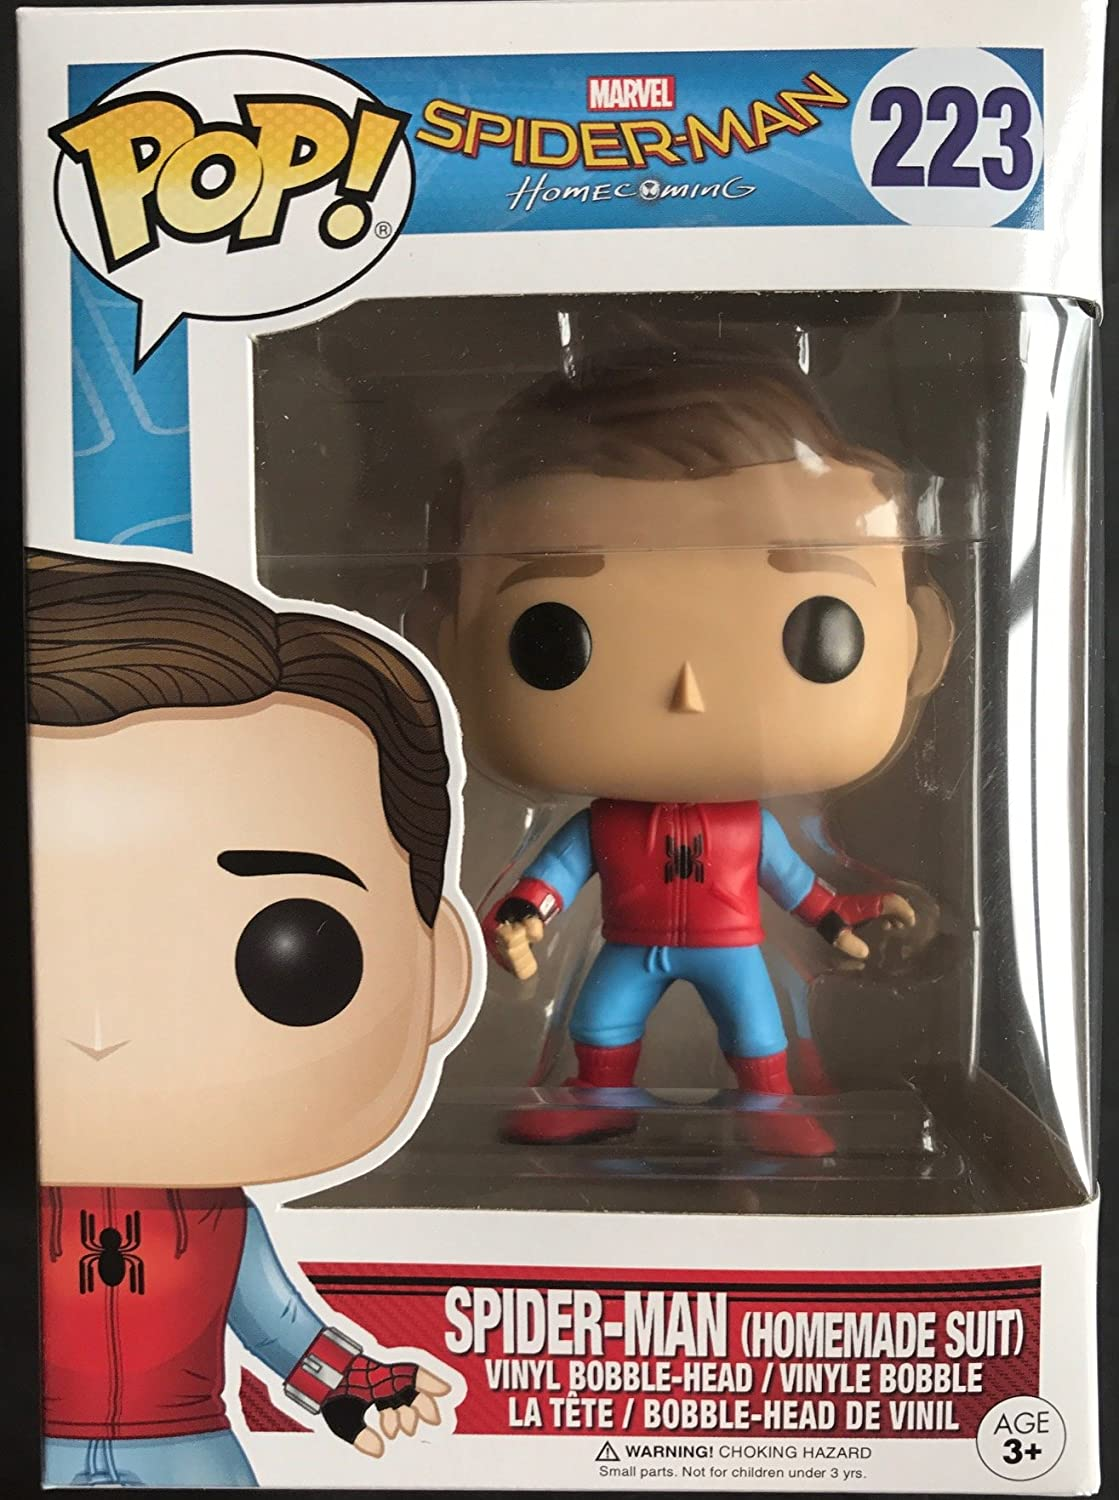 Funko POP Spider-Man Homecoming Walmart Exclusive Spider-Man Homemade Suit Unmasked #223